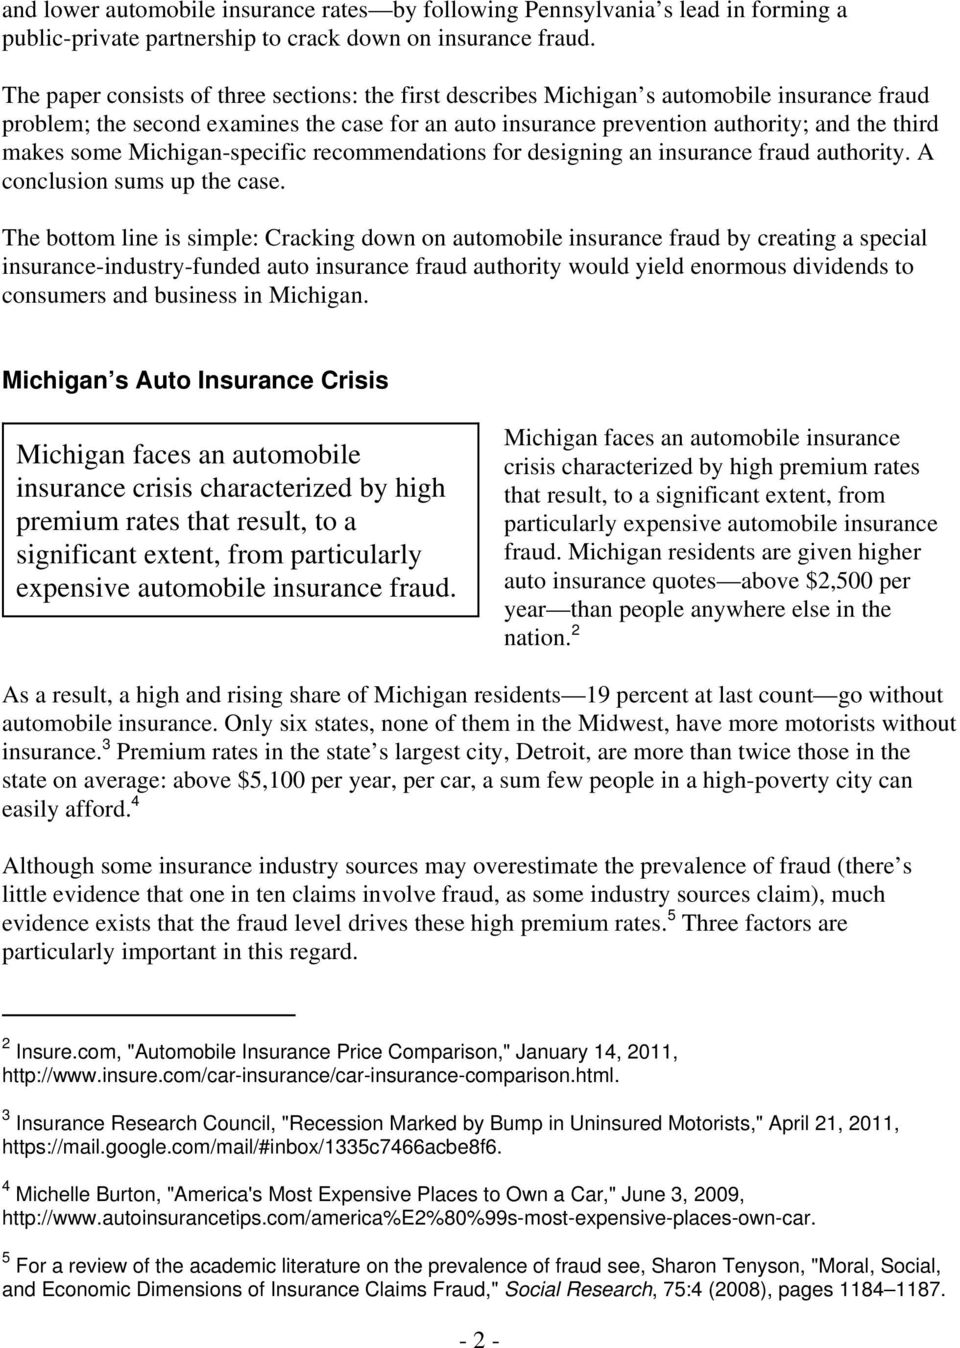 some Michigan-specific recommendations for designing an insurance fraud authority. A conclusion sums up the case.